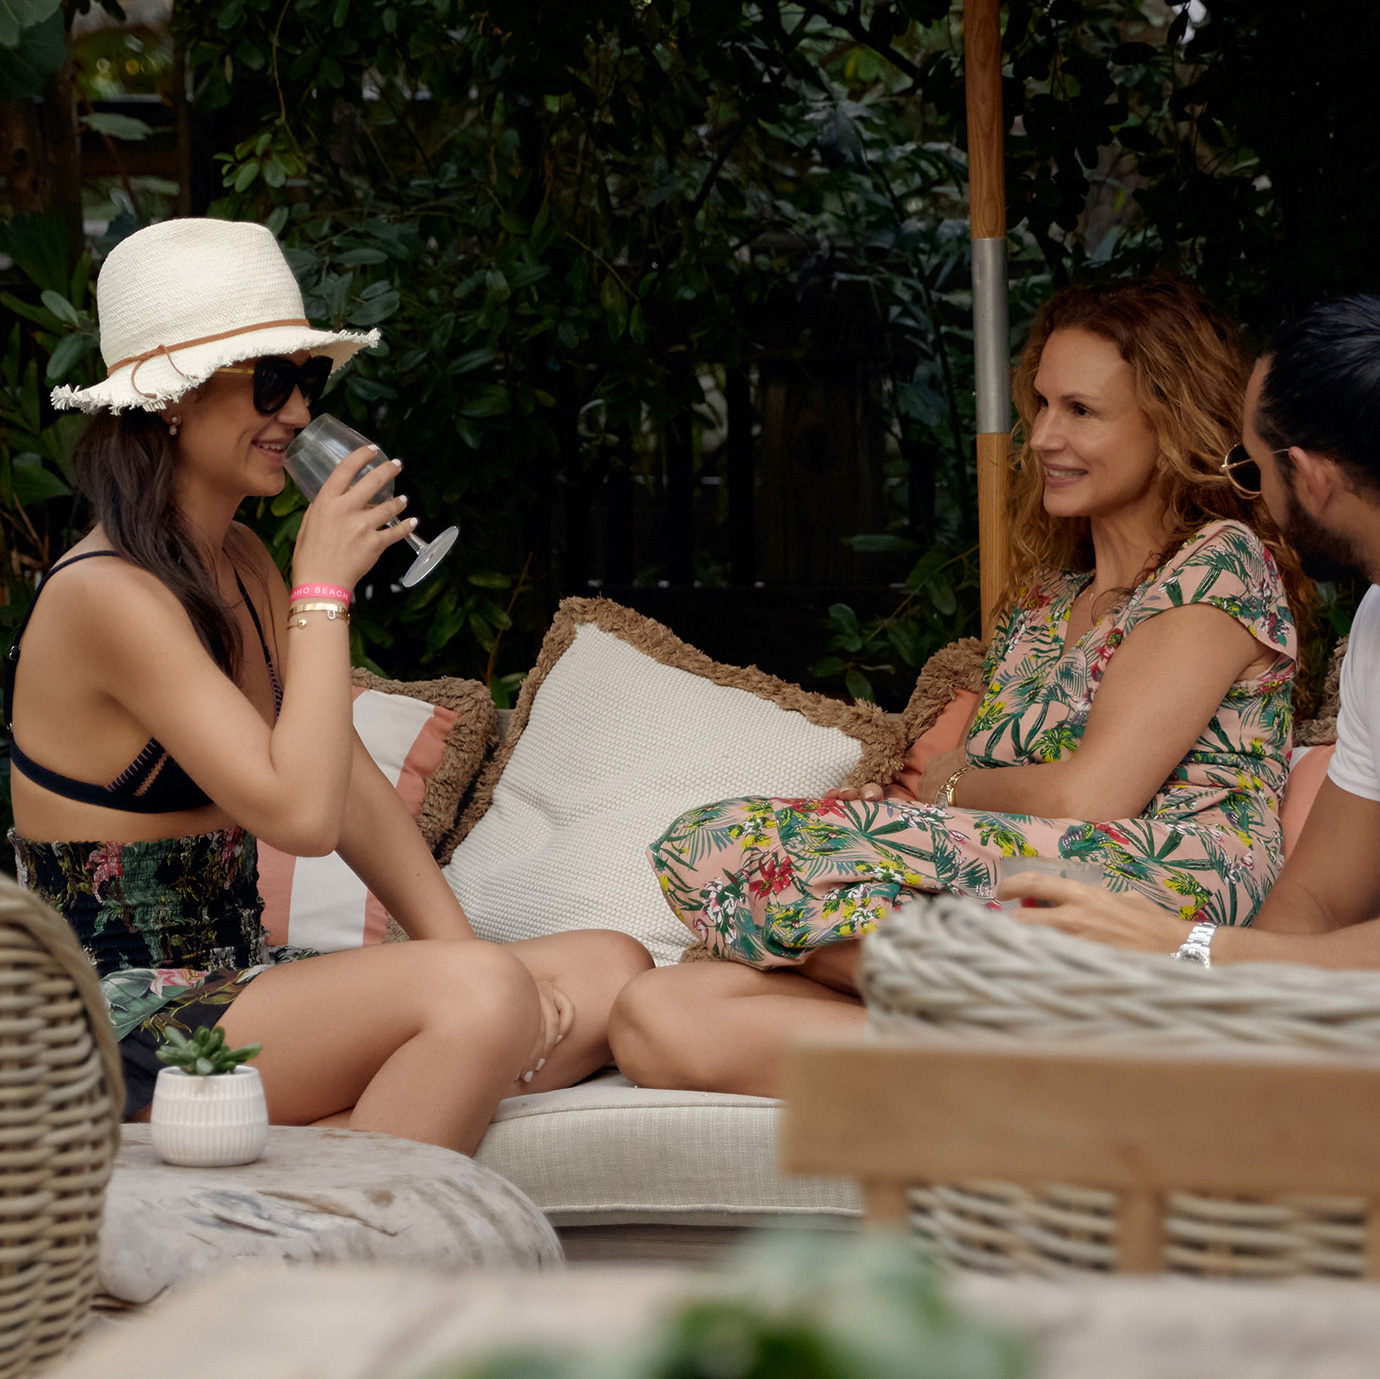 A group of women chating in an outdoor bar.